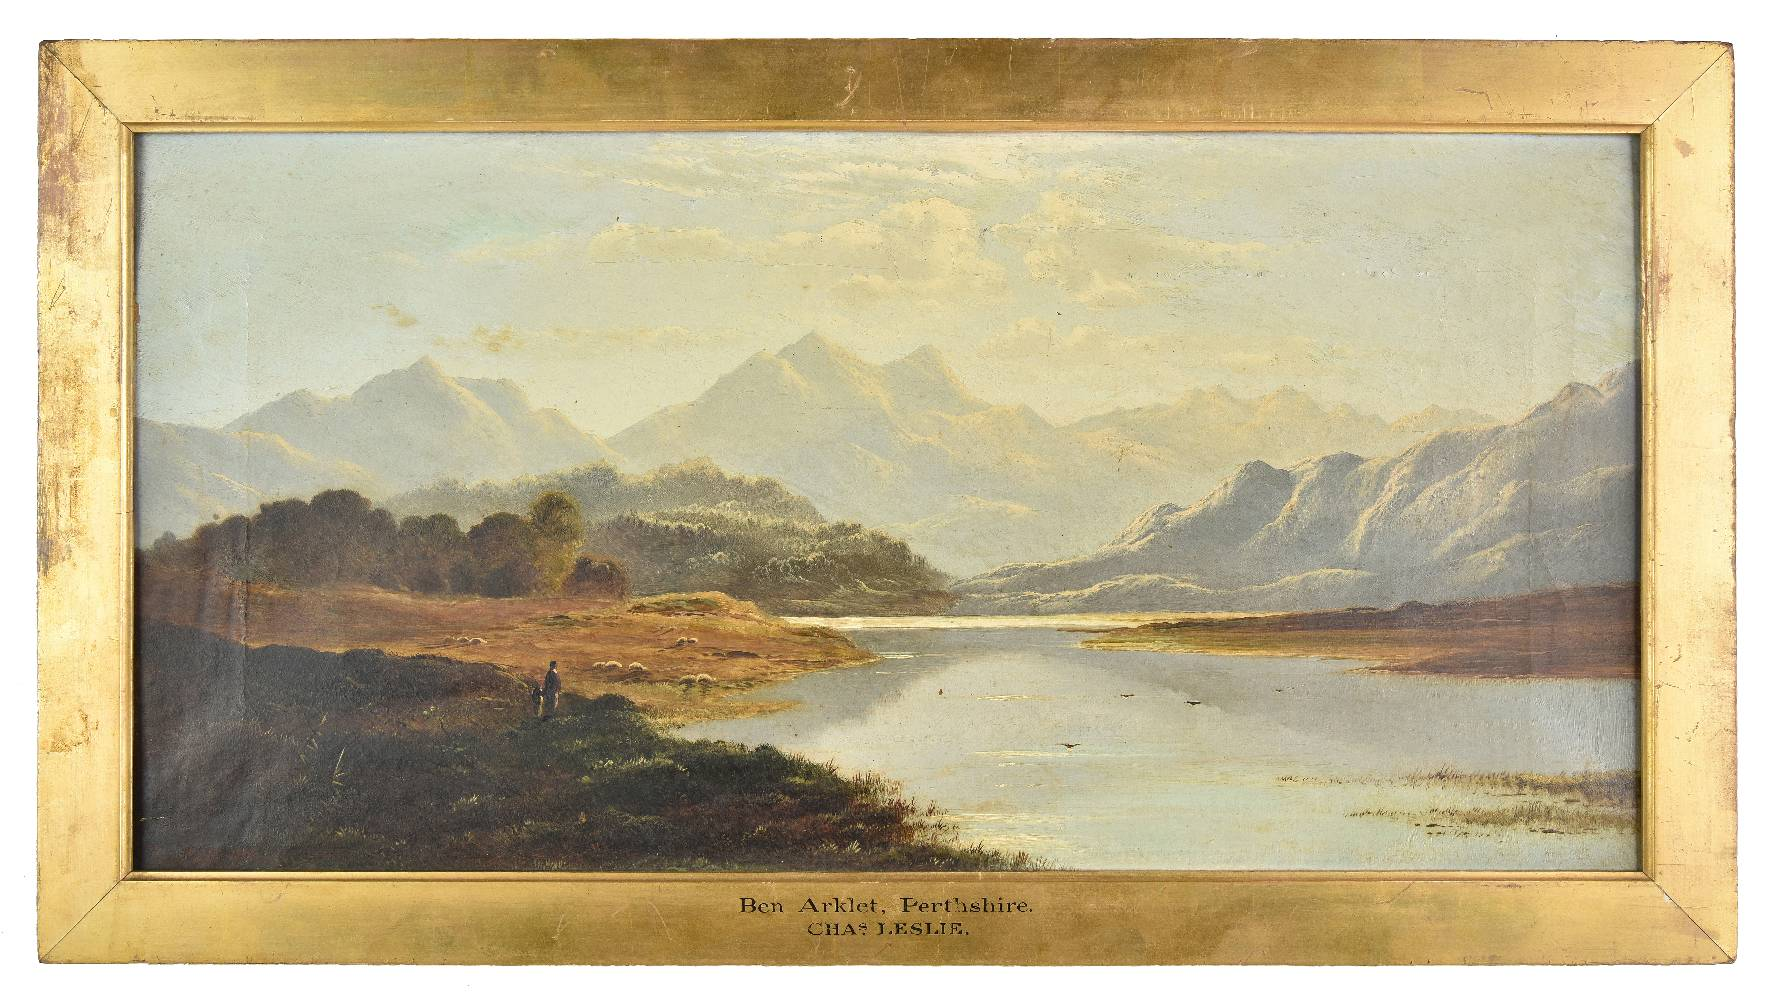 Lot 43 - *Leslie (Charles, 1835-1890). Ben Arklet, Perthshire, 1878, oil on canvas, signed and dated lower